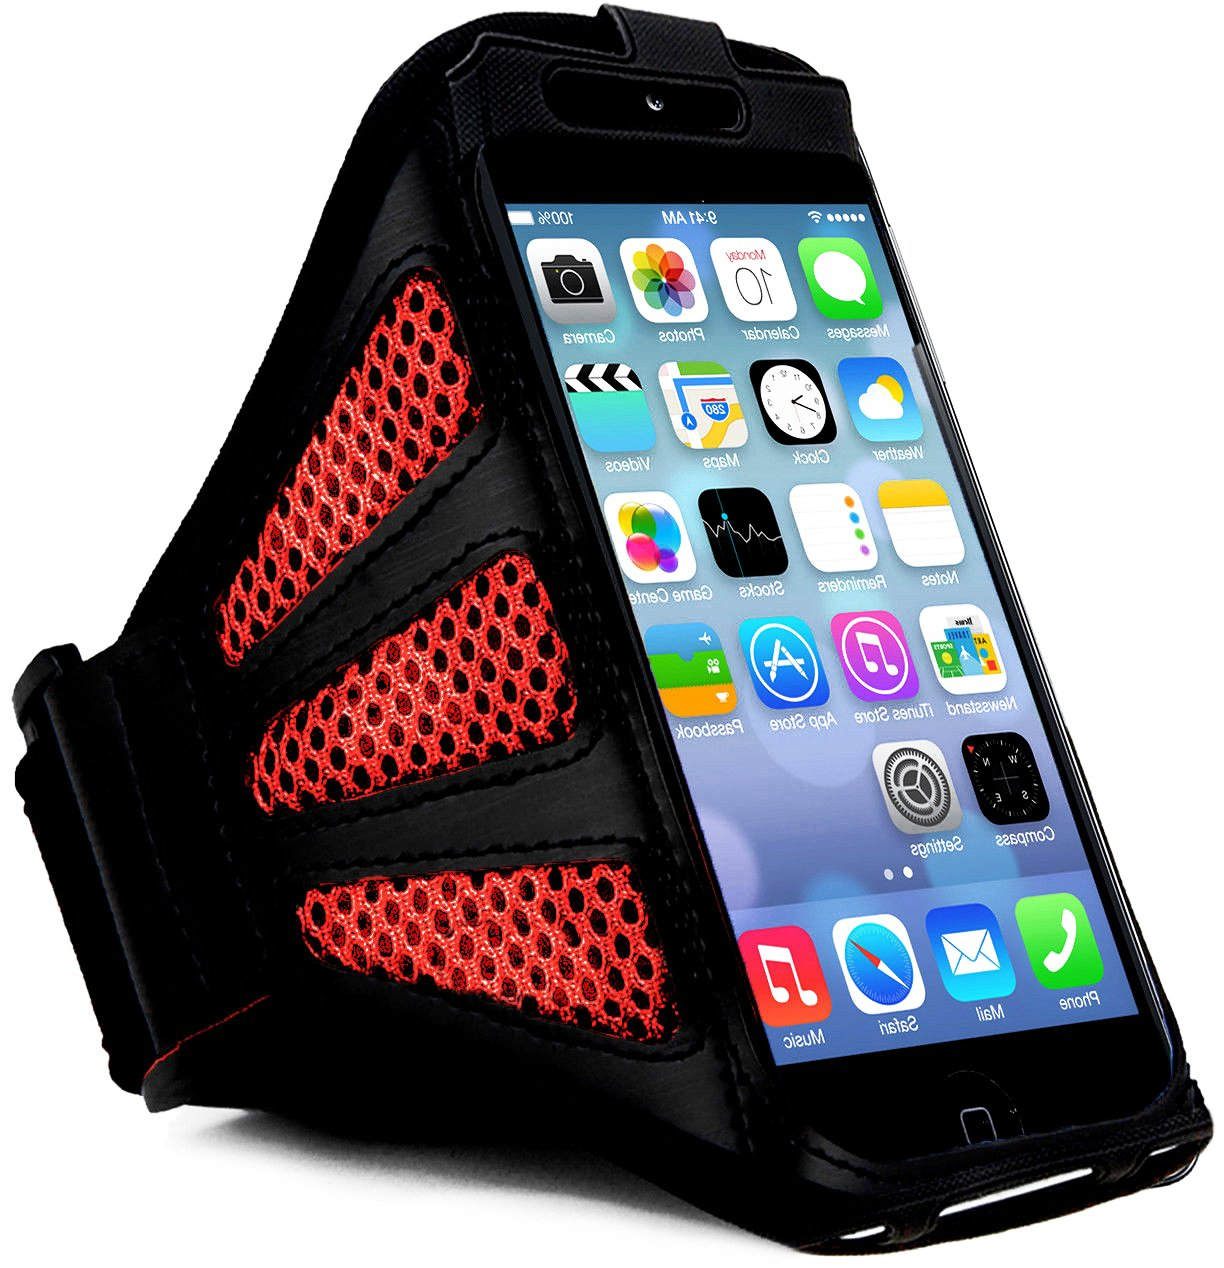 myLife Coal Black and Vermillion Red Flex Mesh {Rain Resistant Velcro Secure Running Armband} Dual-Fit Jogging Arm Strap Holder for iPhone 5|5S|5C and iPod 5 (5G) 5th Generation by Apple All Ports Accessible waterproof bag pouch w armband neck strap for iphone 5 5c translucent blue black